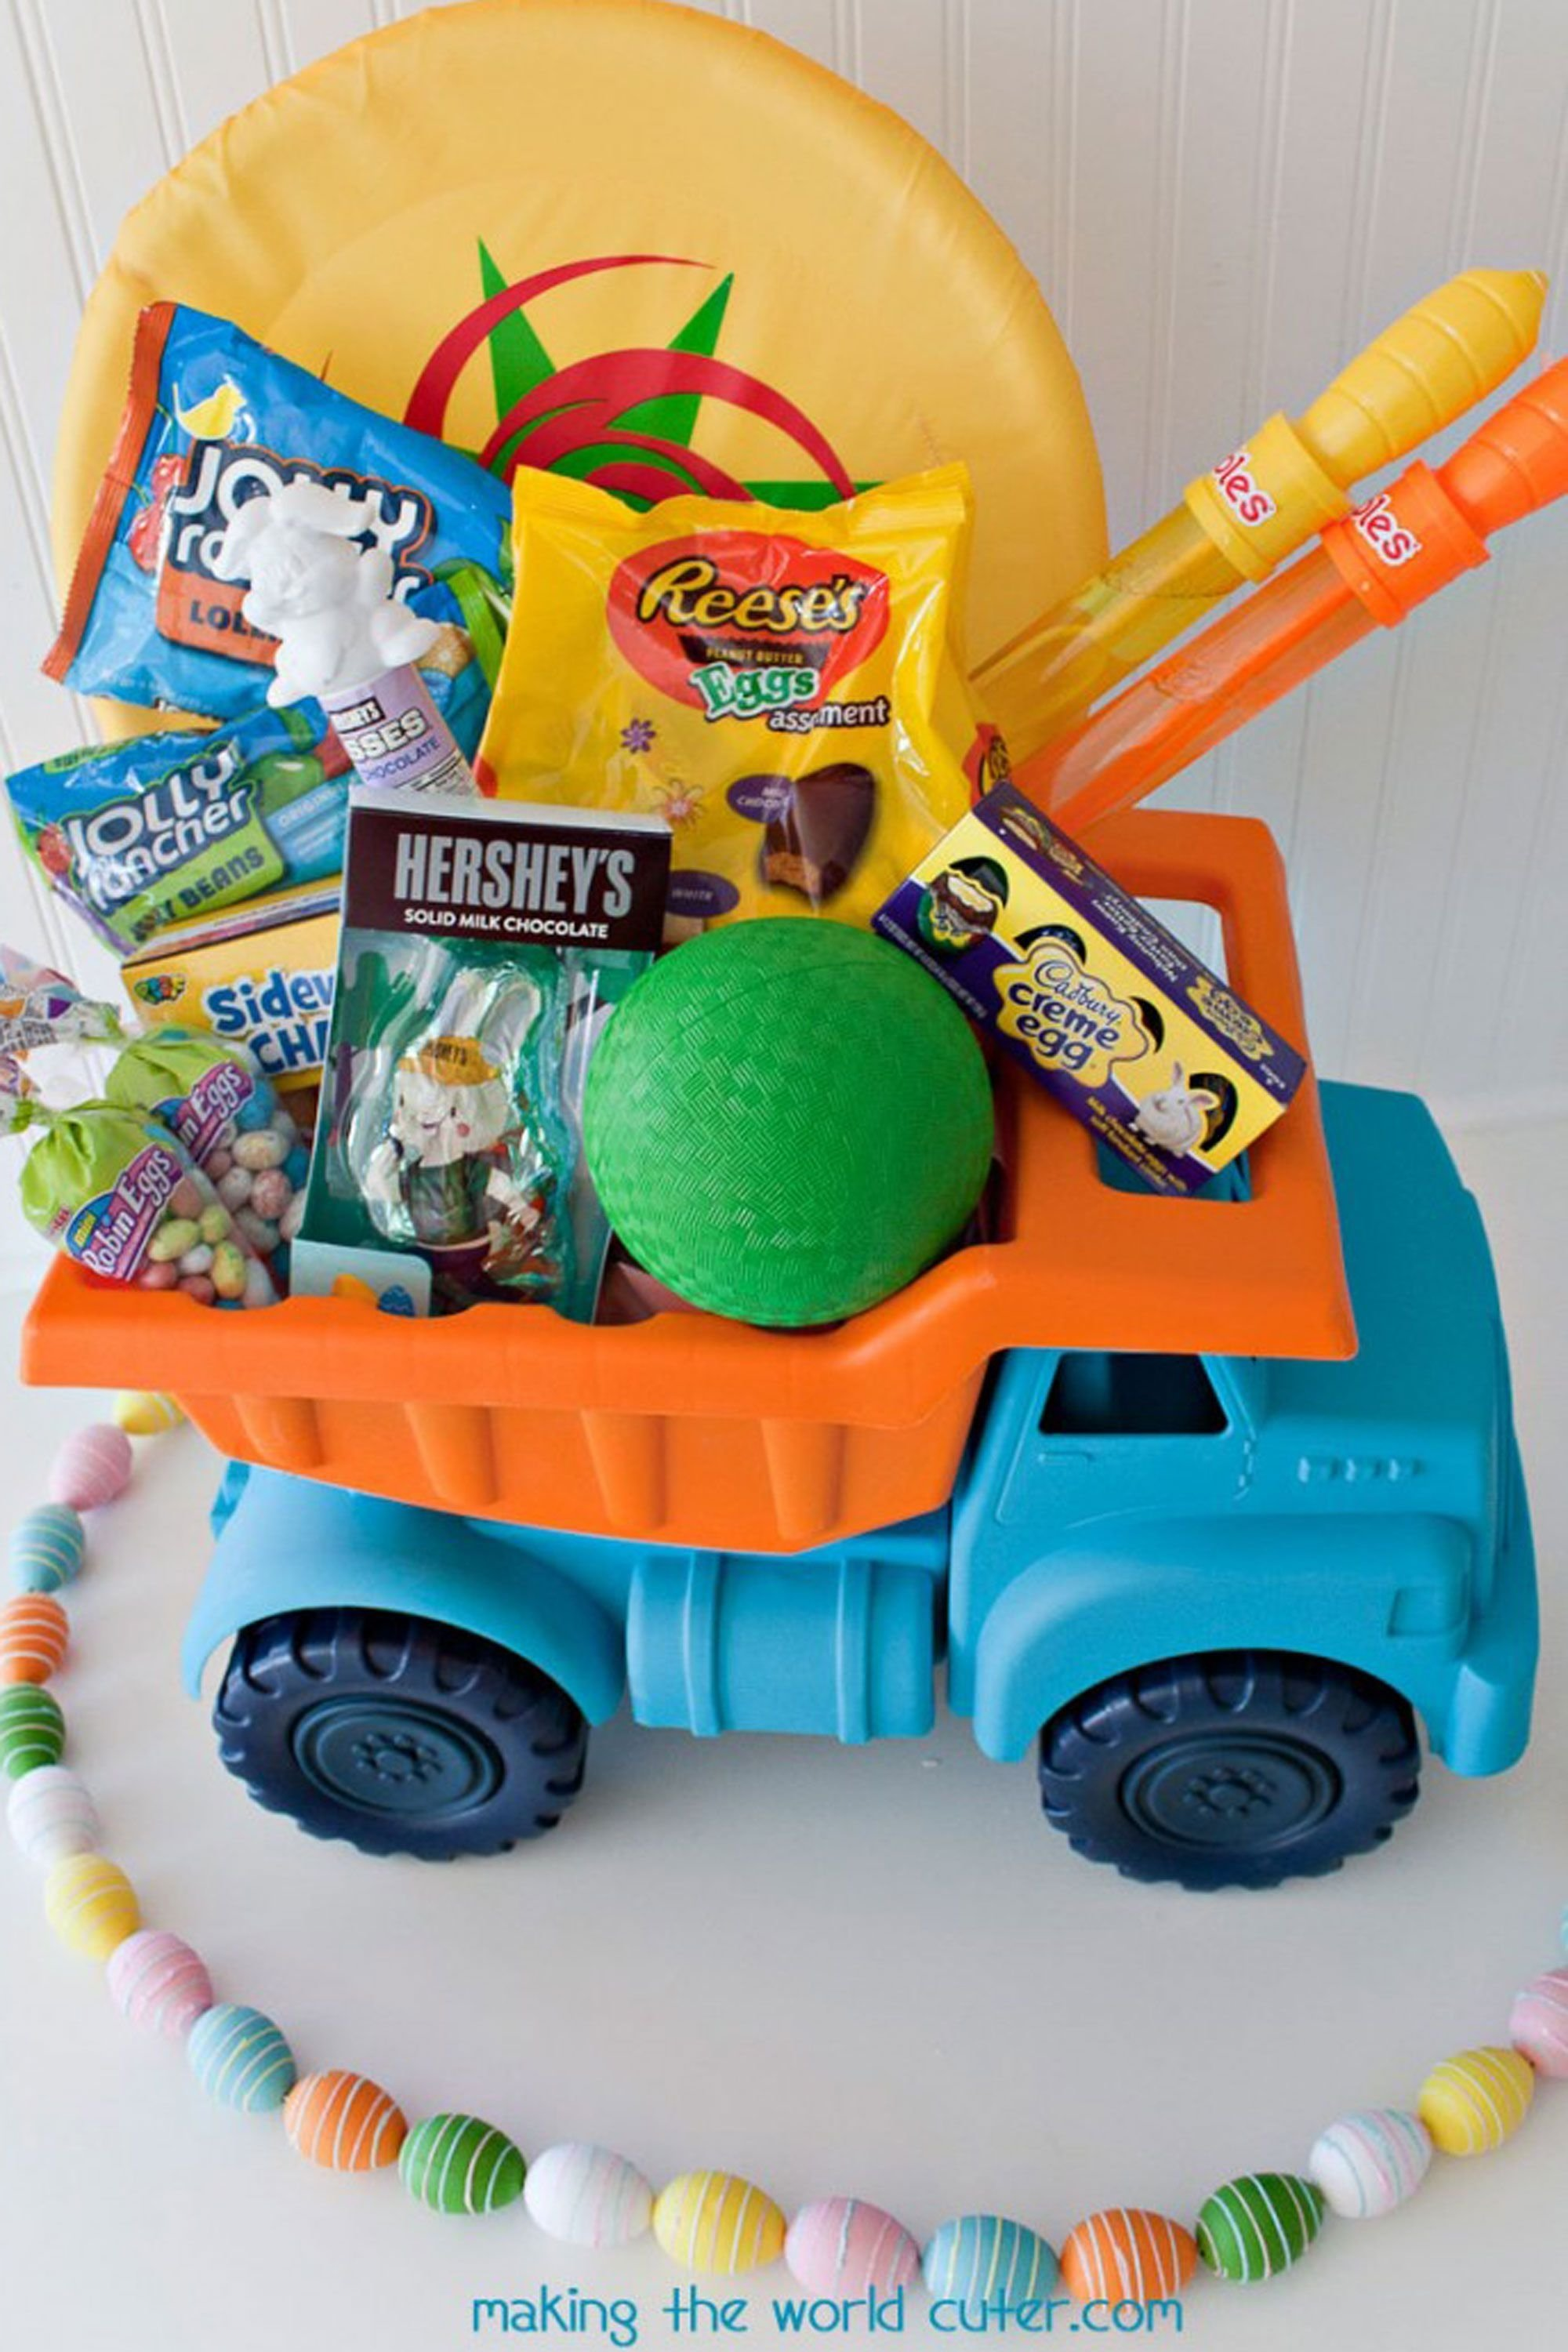 10 Fashionable Gift Basket Ideas For Kids 16 easter basket ideas for kids best easter gifts for babies 4